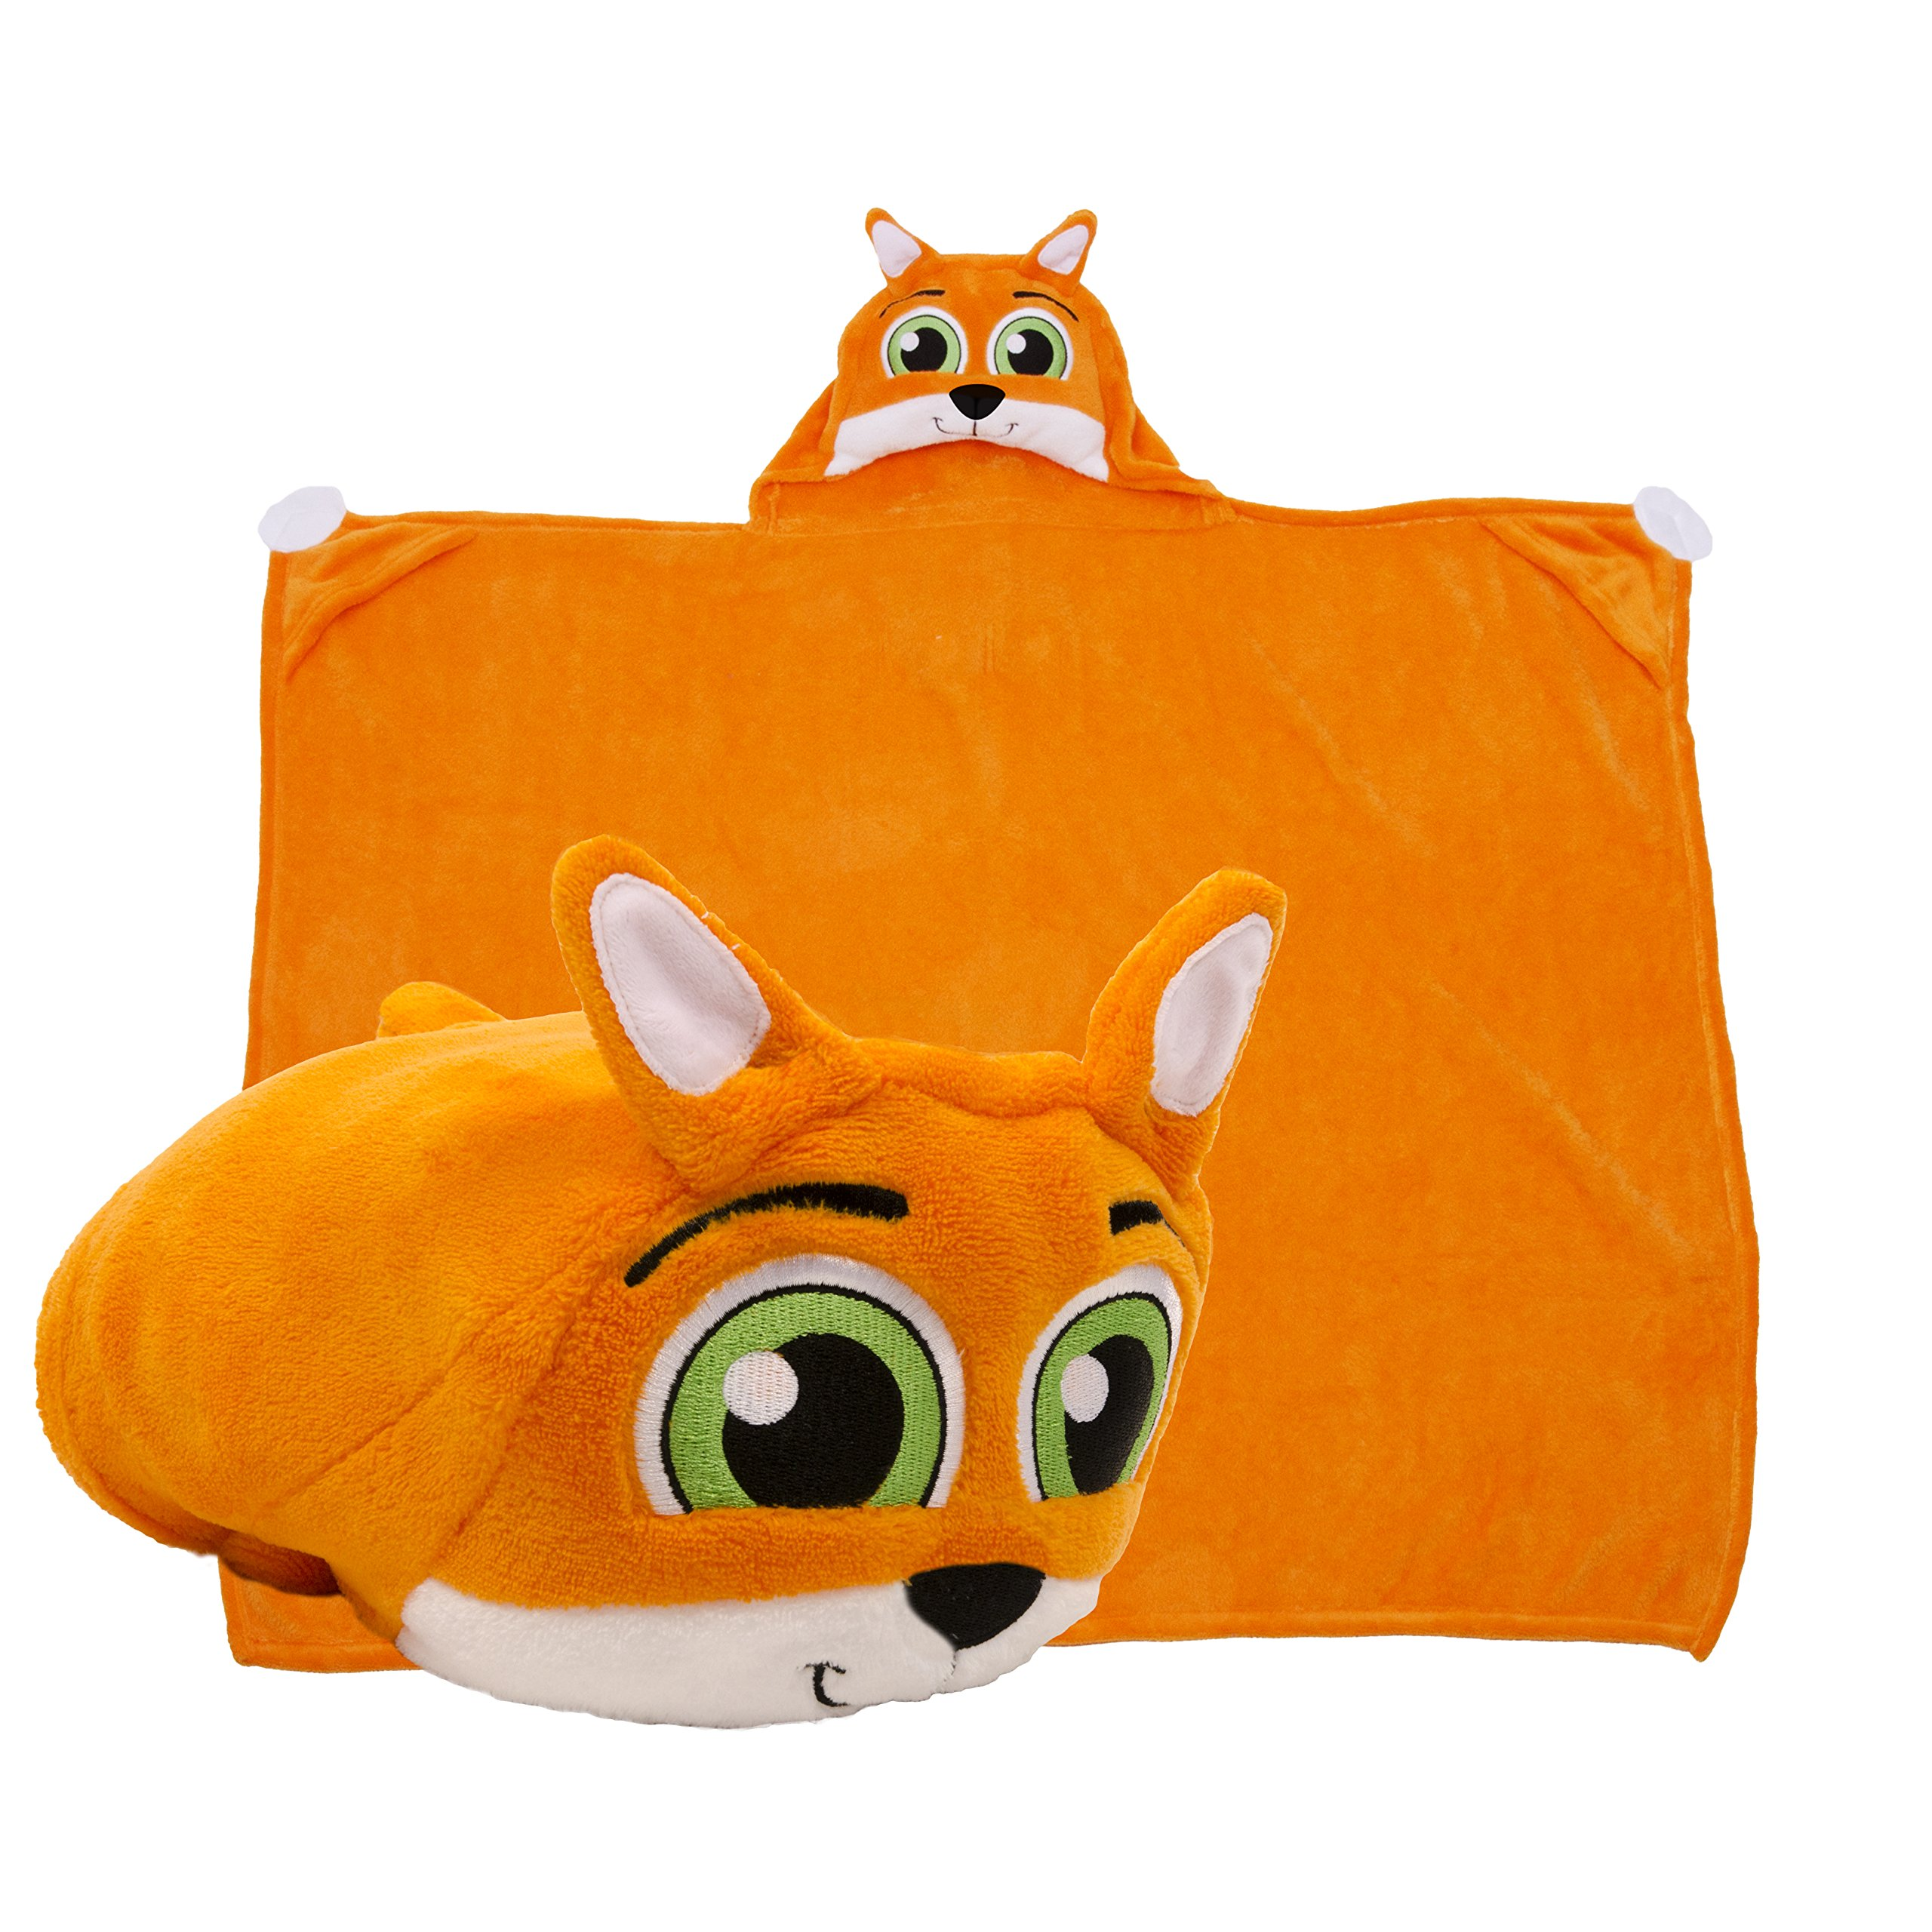 Comfy Critters Stuffed Animal Blanket – Fox – Kids huggable pillow and blanket perfect for pretend play, travel, nap time.